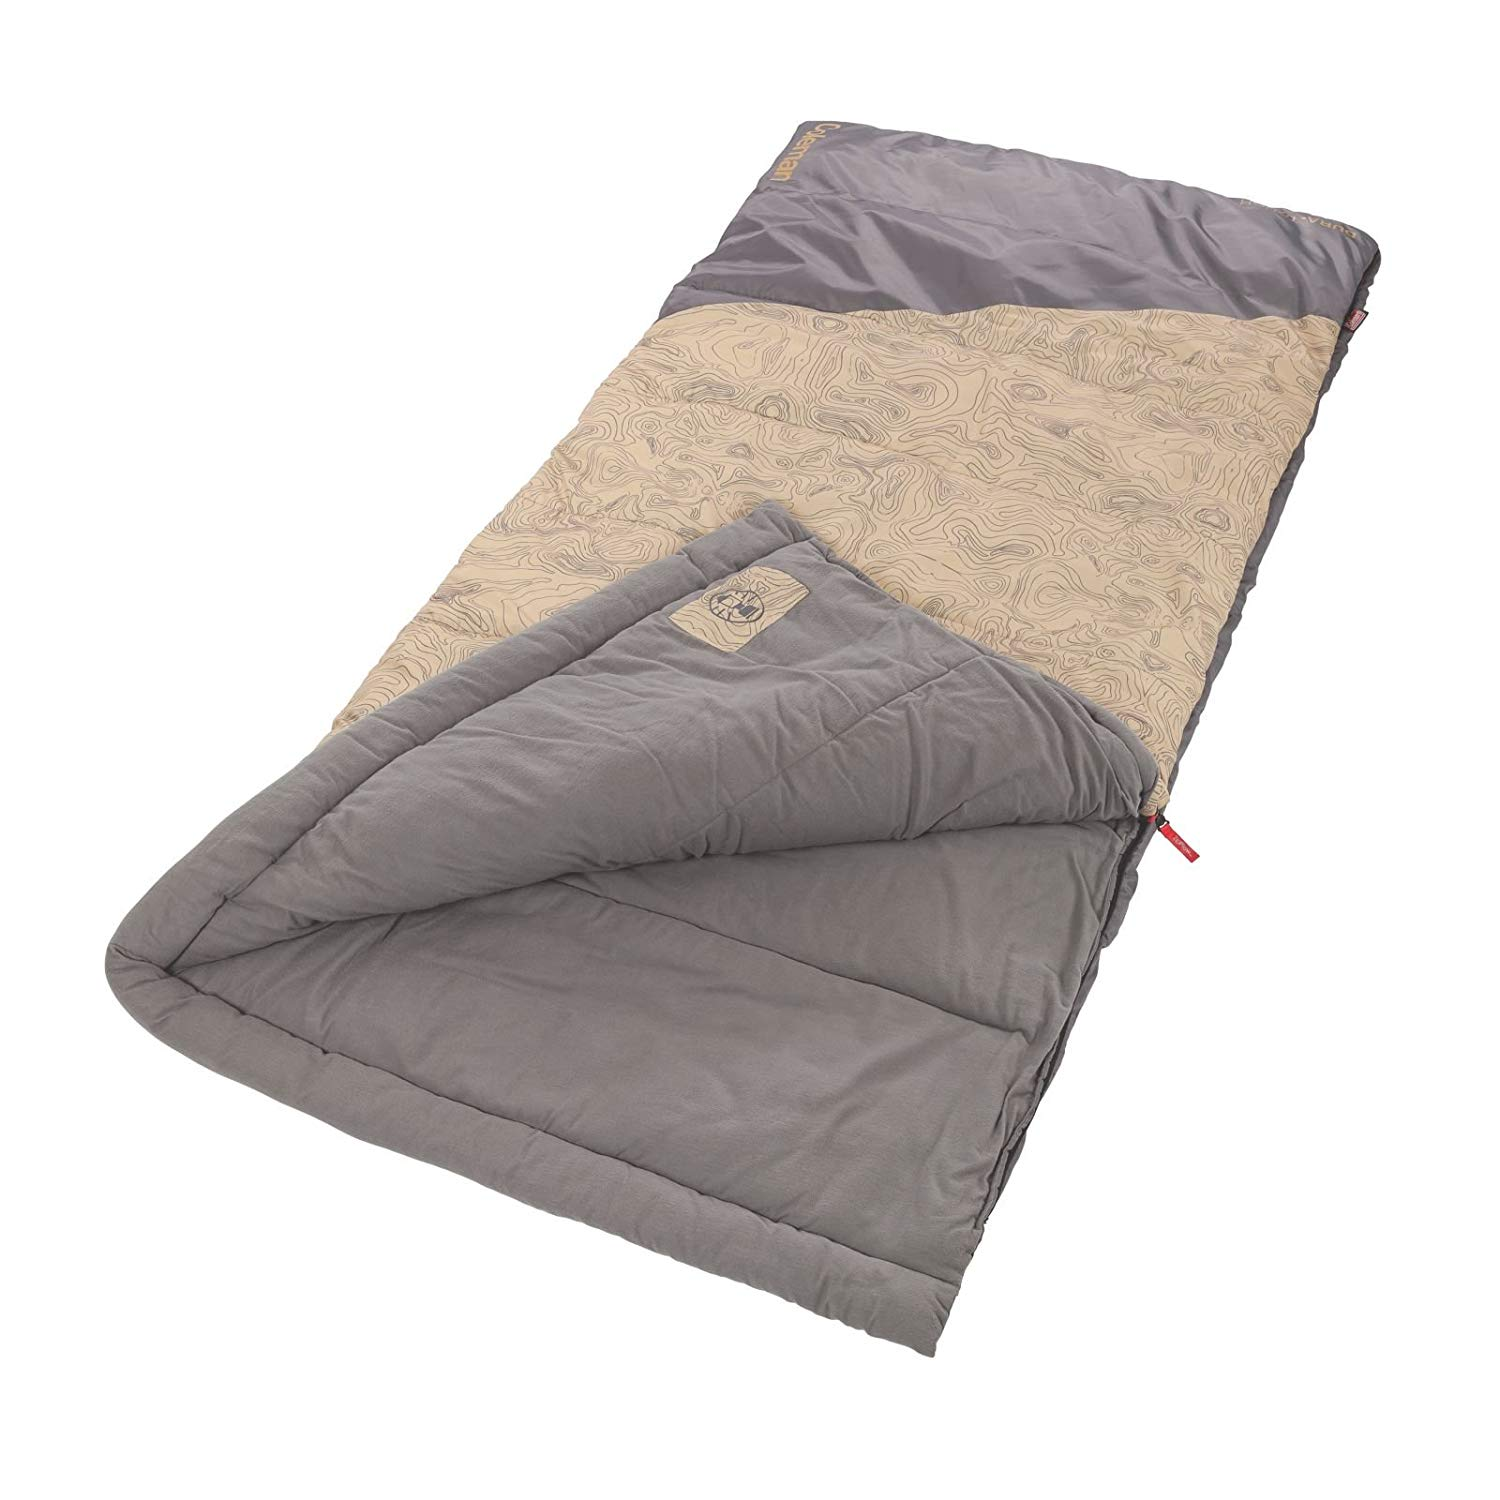 An image of Coleman Big-N-Tall 2000025731 30 Degree Polyester Sleeping Bag